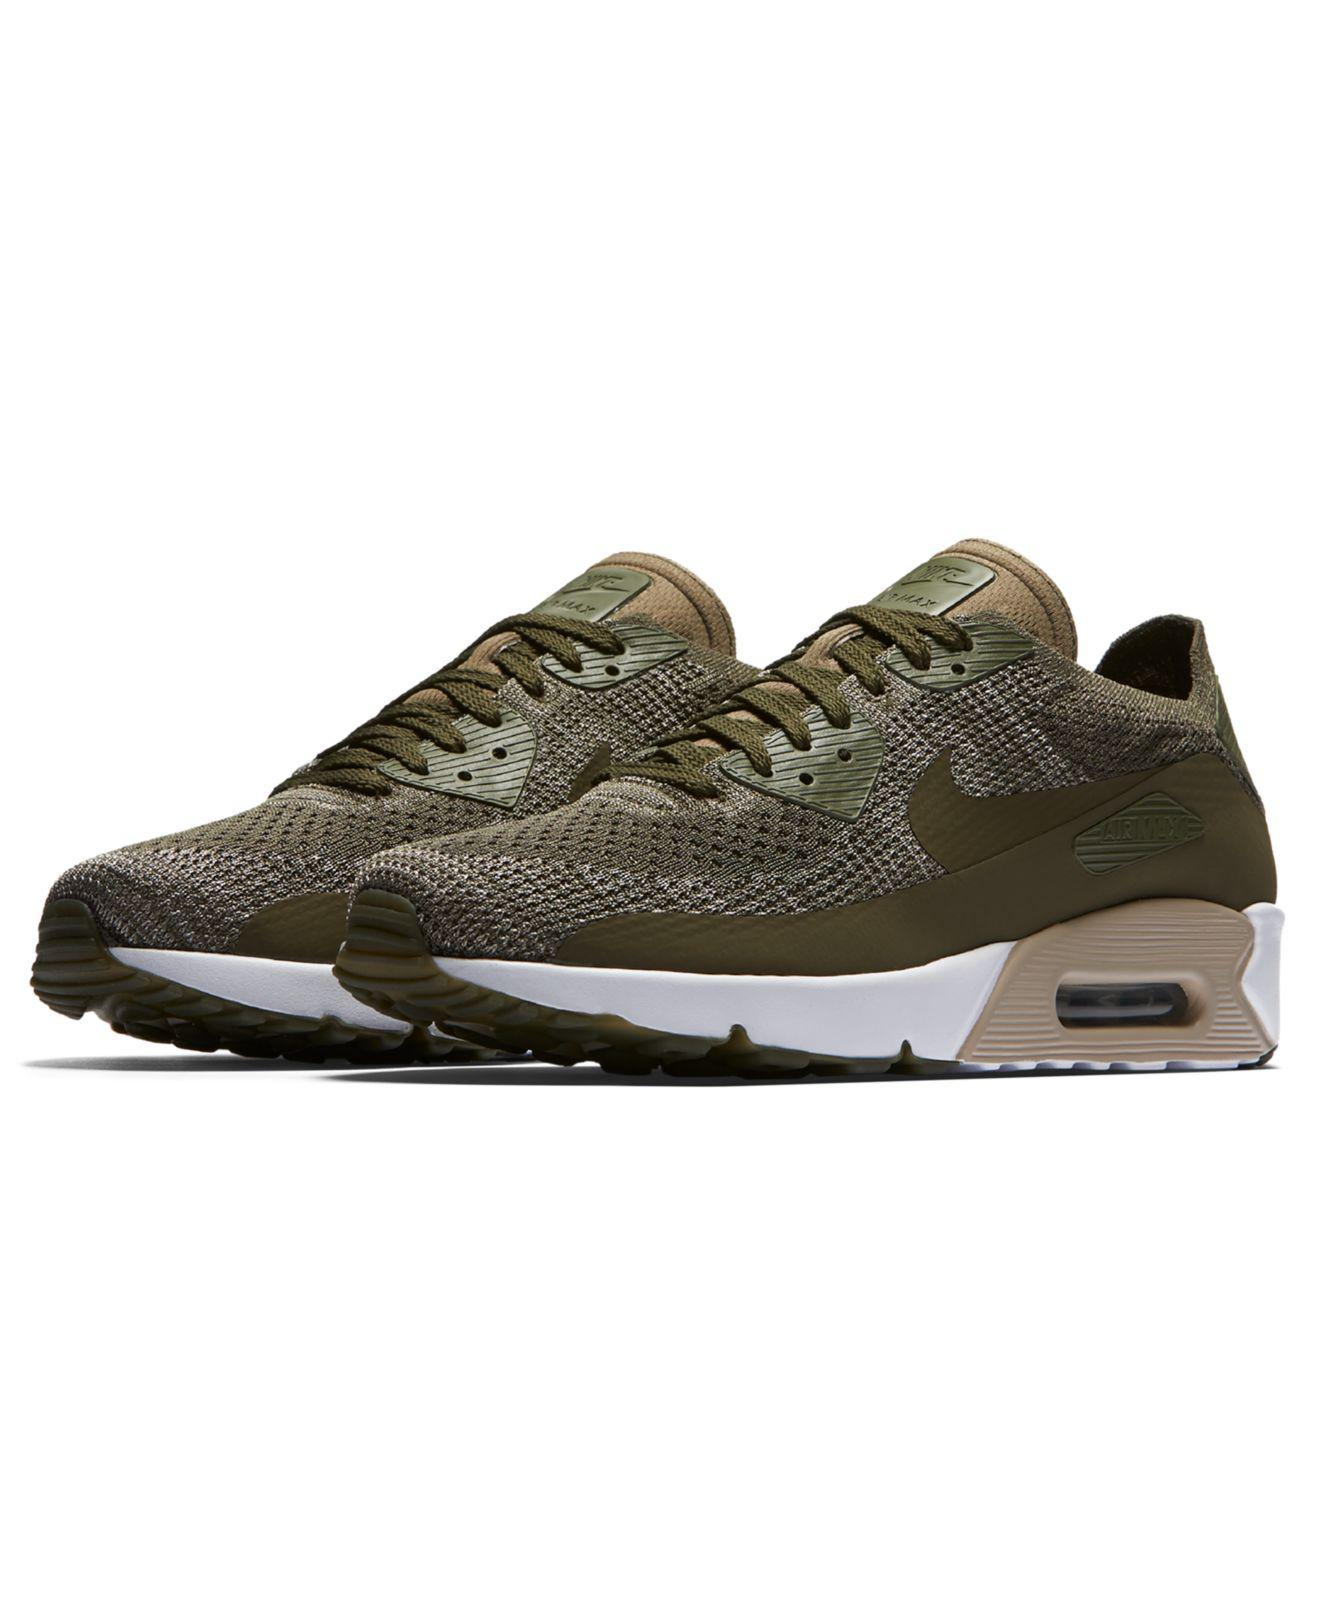 online store 89001 9170c Lyst - Nike Men s Air Max 90 Ultra 2.0 Flyknit Running Sneakers From Finish  Line in Green for Men